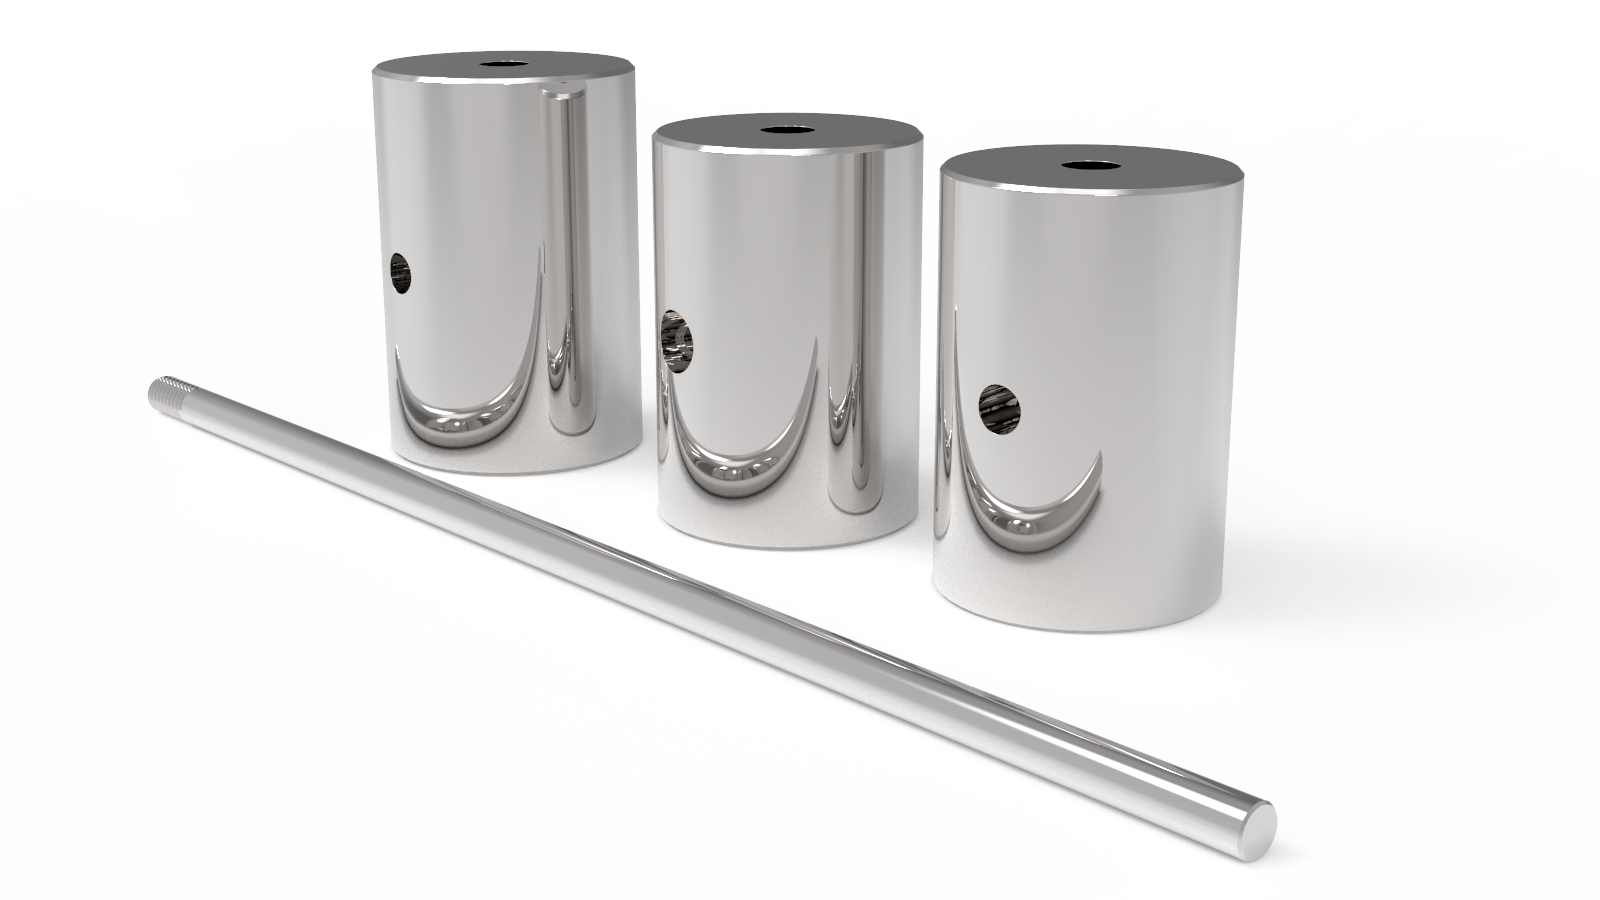 Stainless steel weight stack components